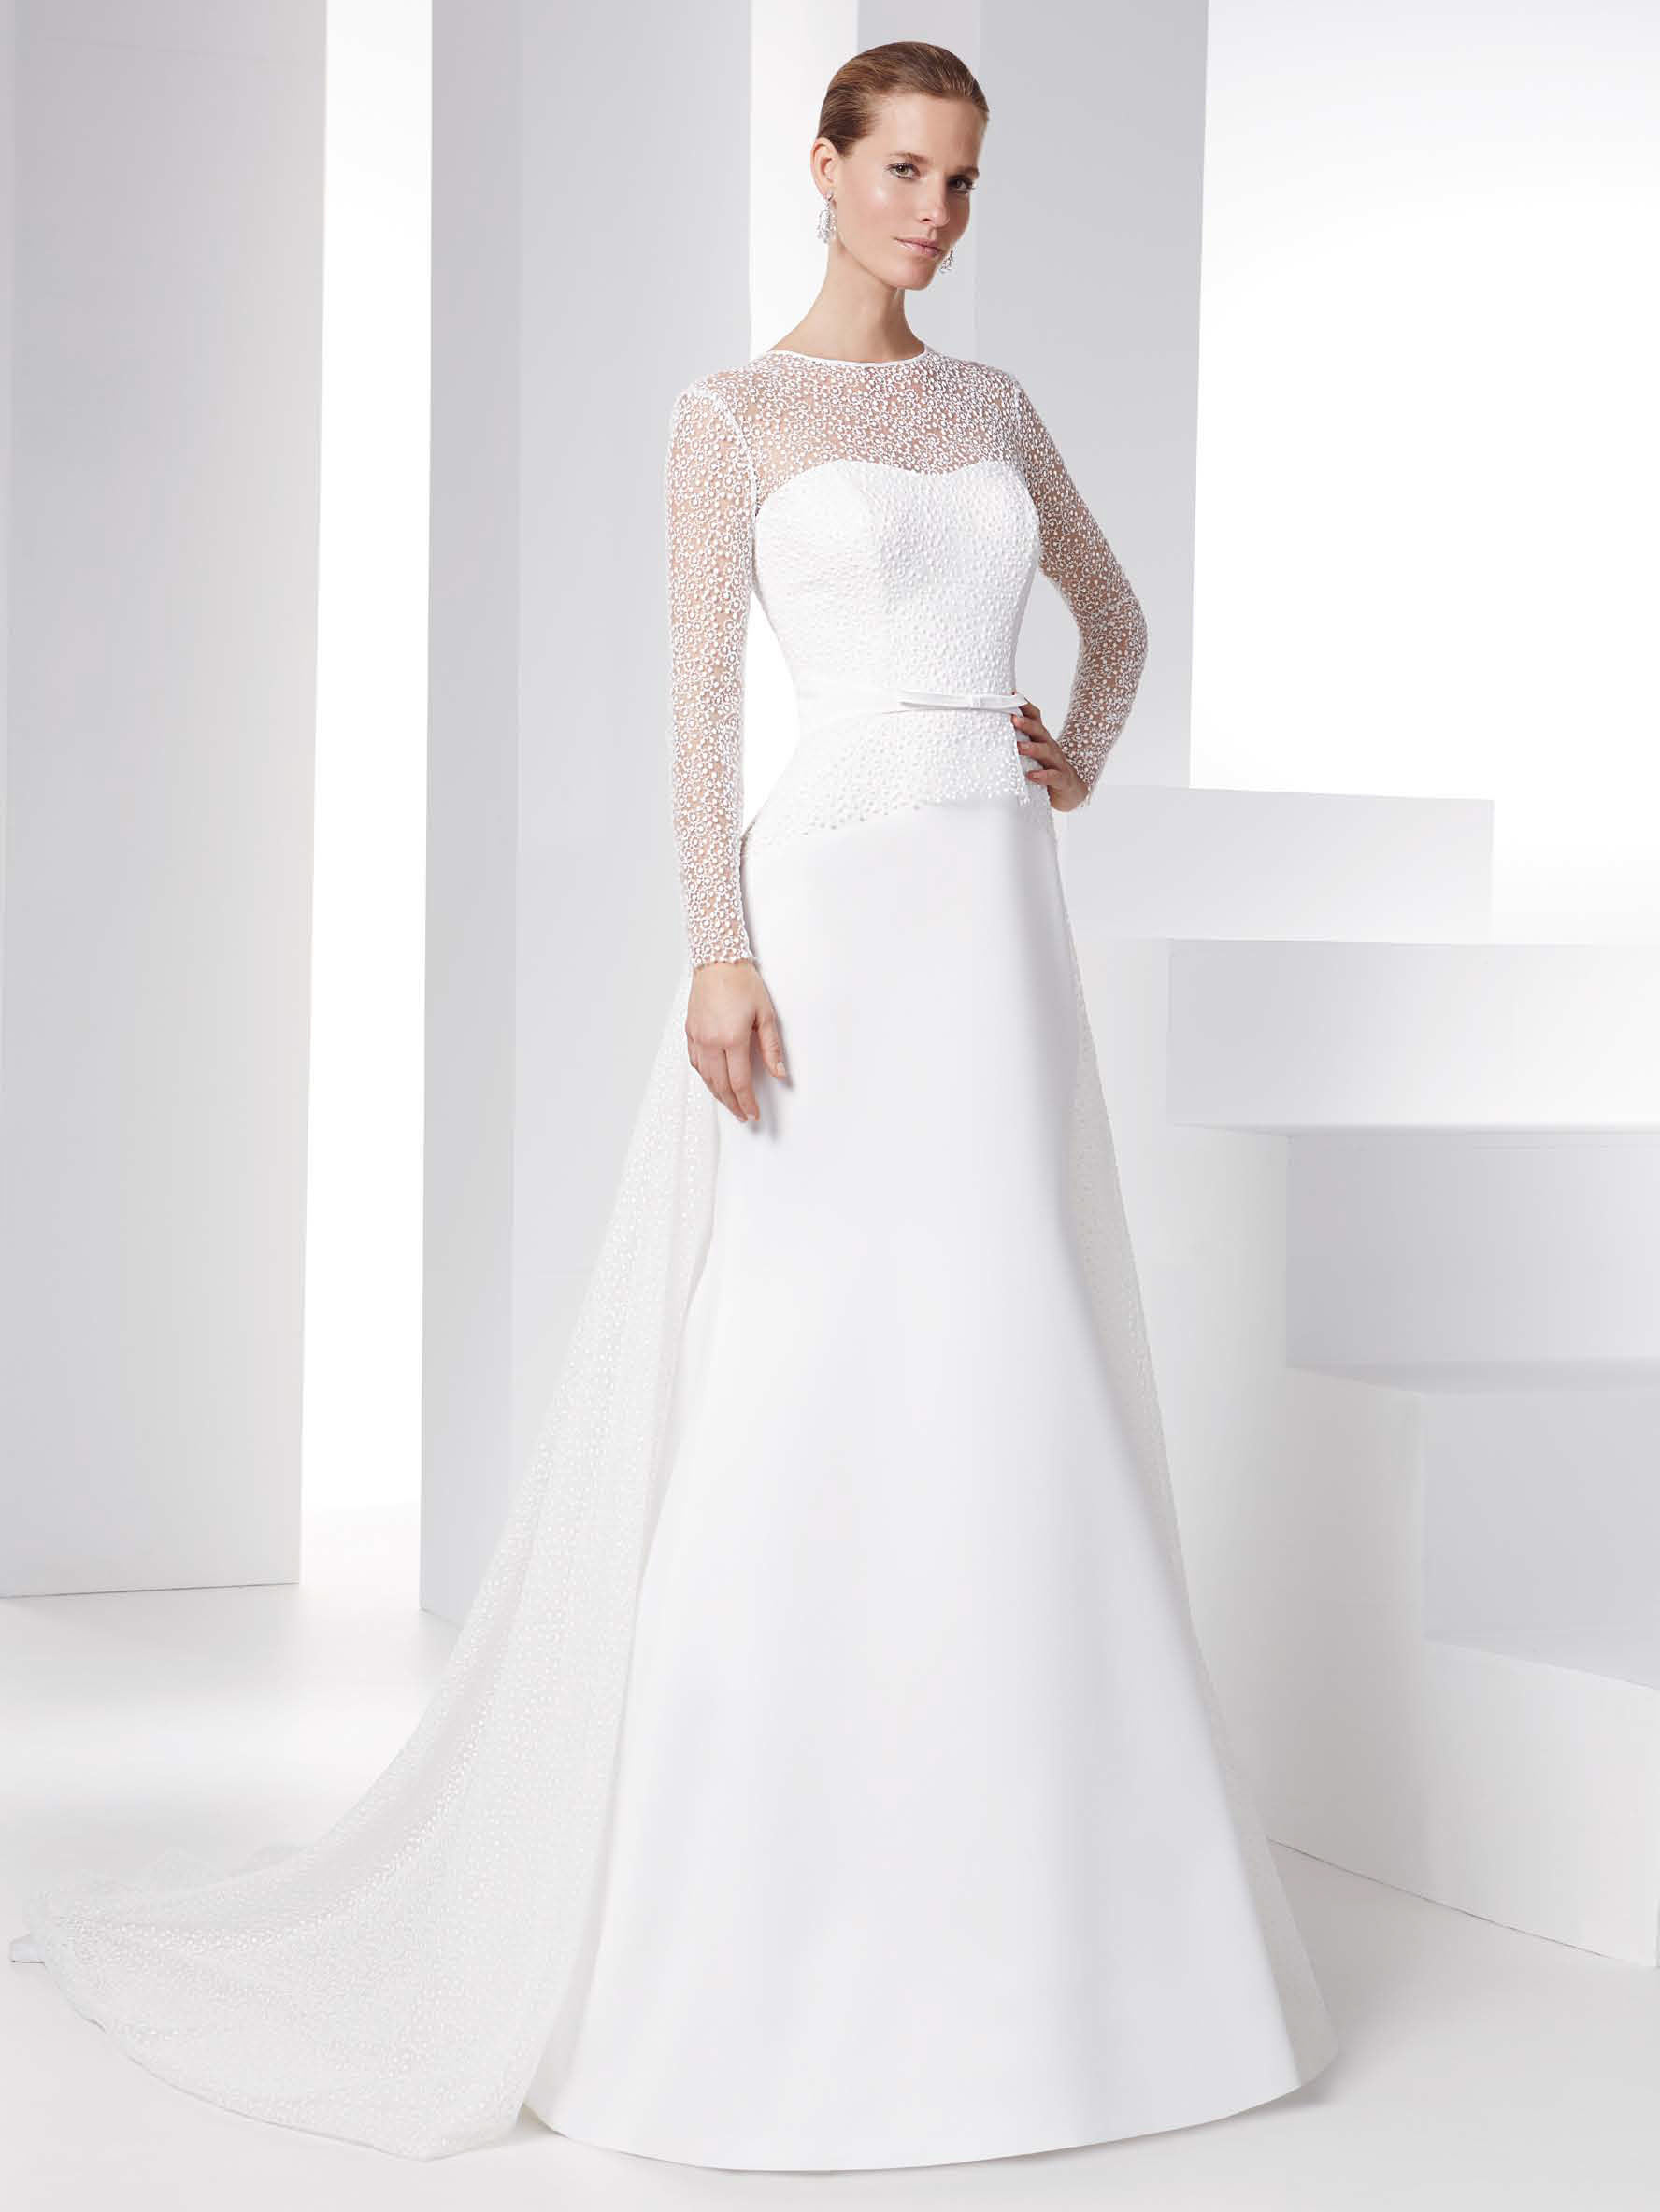 the latest c7aa5 b4a9b Vestiti sposa coprispalle 2016 esempio Raimon Bundo – Look Sposa